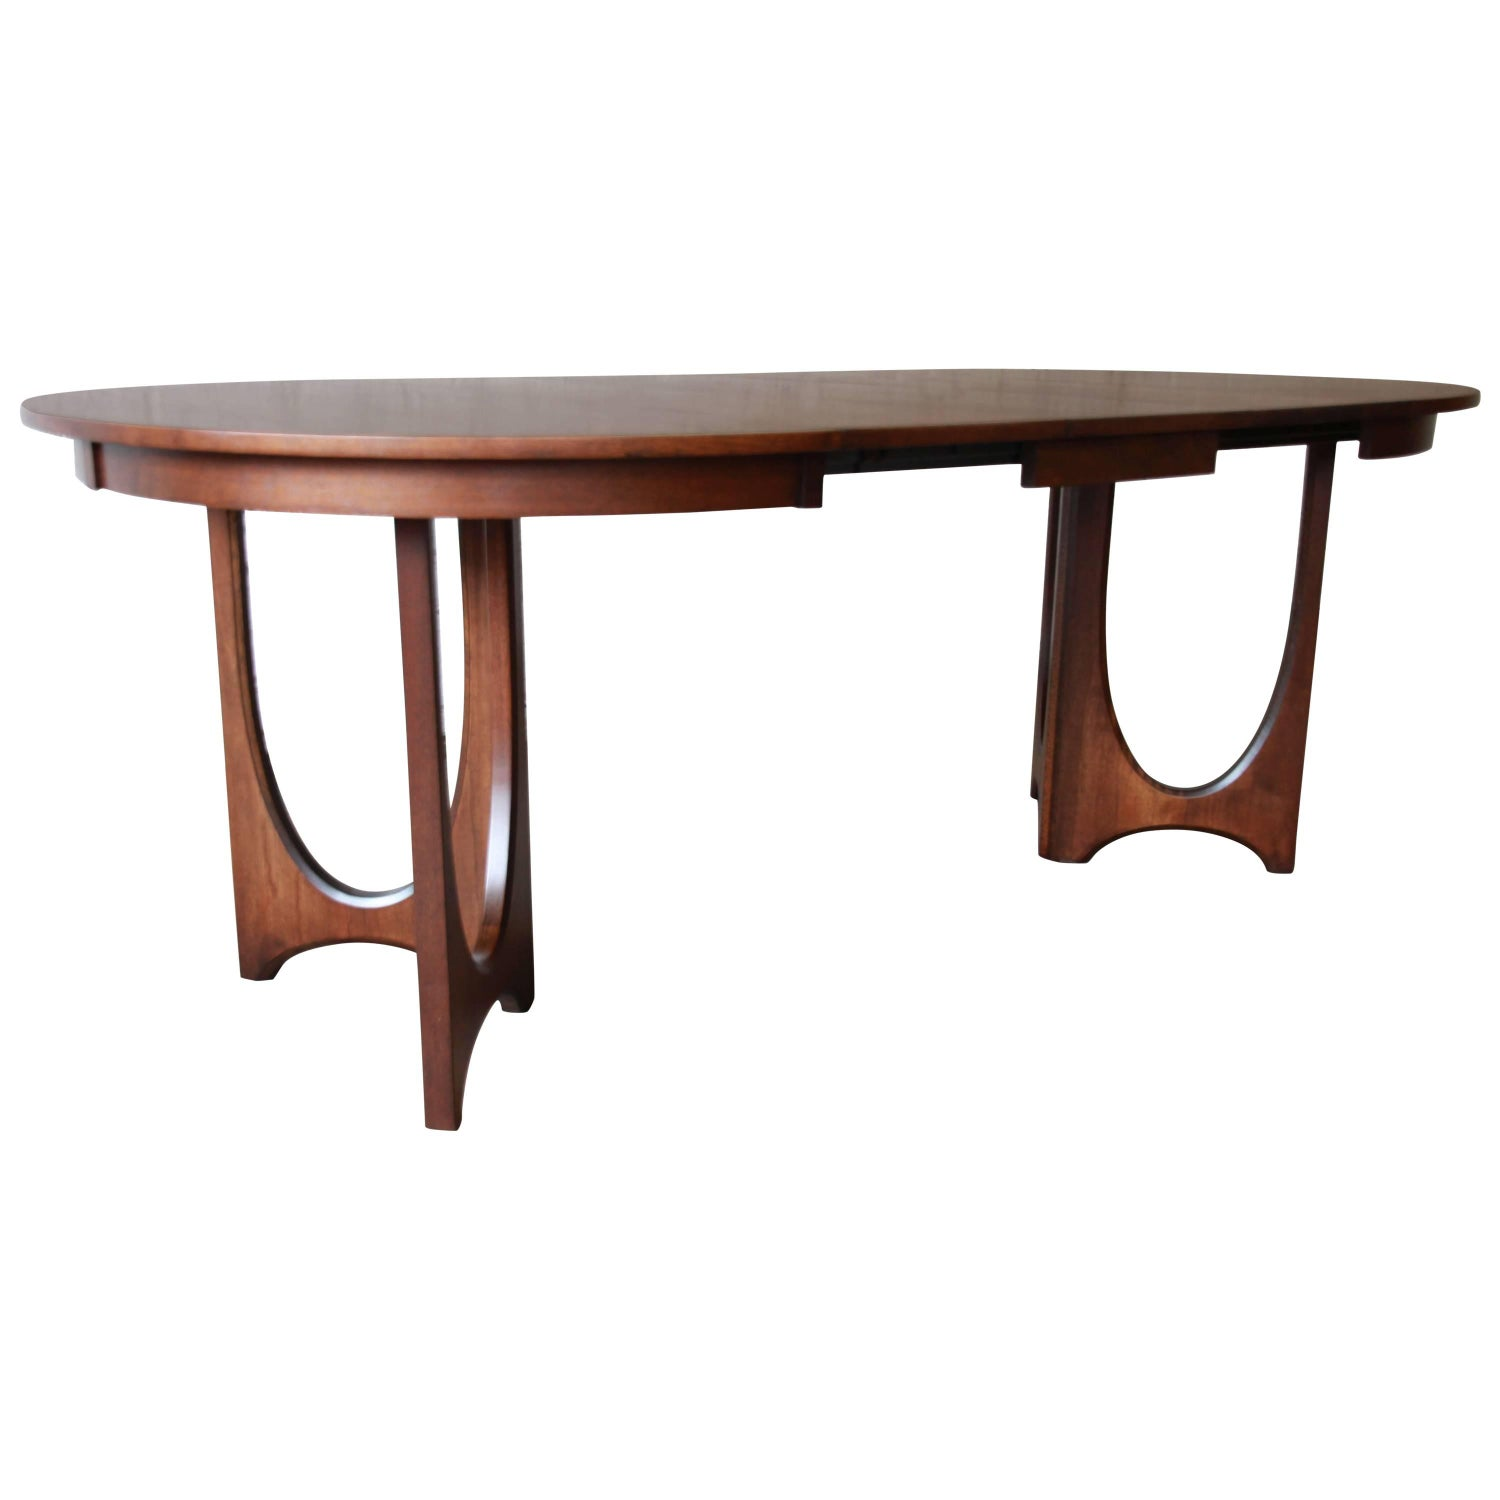 Broyhill Brasilia Sculpted Walnut Extension Dining Table at 1stdibs